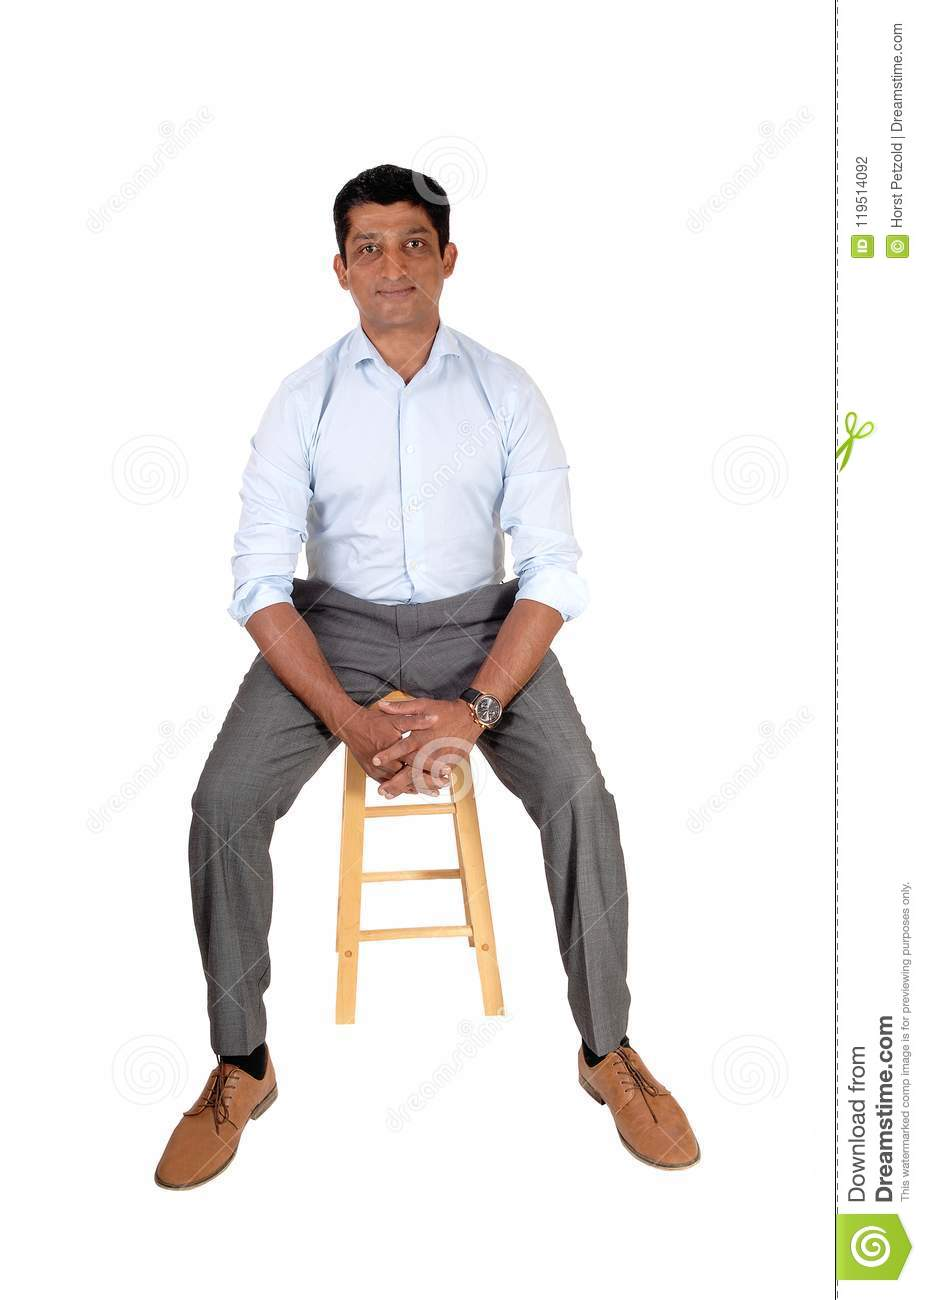 A good looking East Indian man in a suit pants and light blue shirt sitting on a bar chair isolated for white background  sc 1 st  Dreamstime.com & Handsome Asian Man Sitting On Chair Stock Photo - Image of forties ...